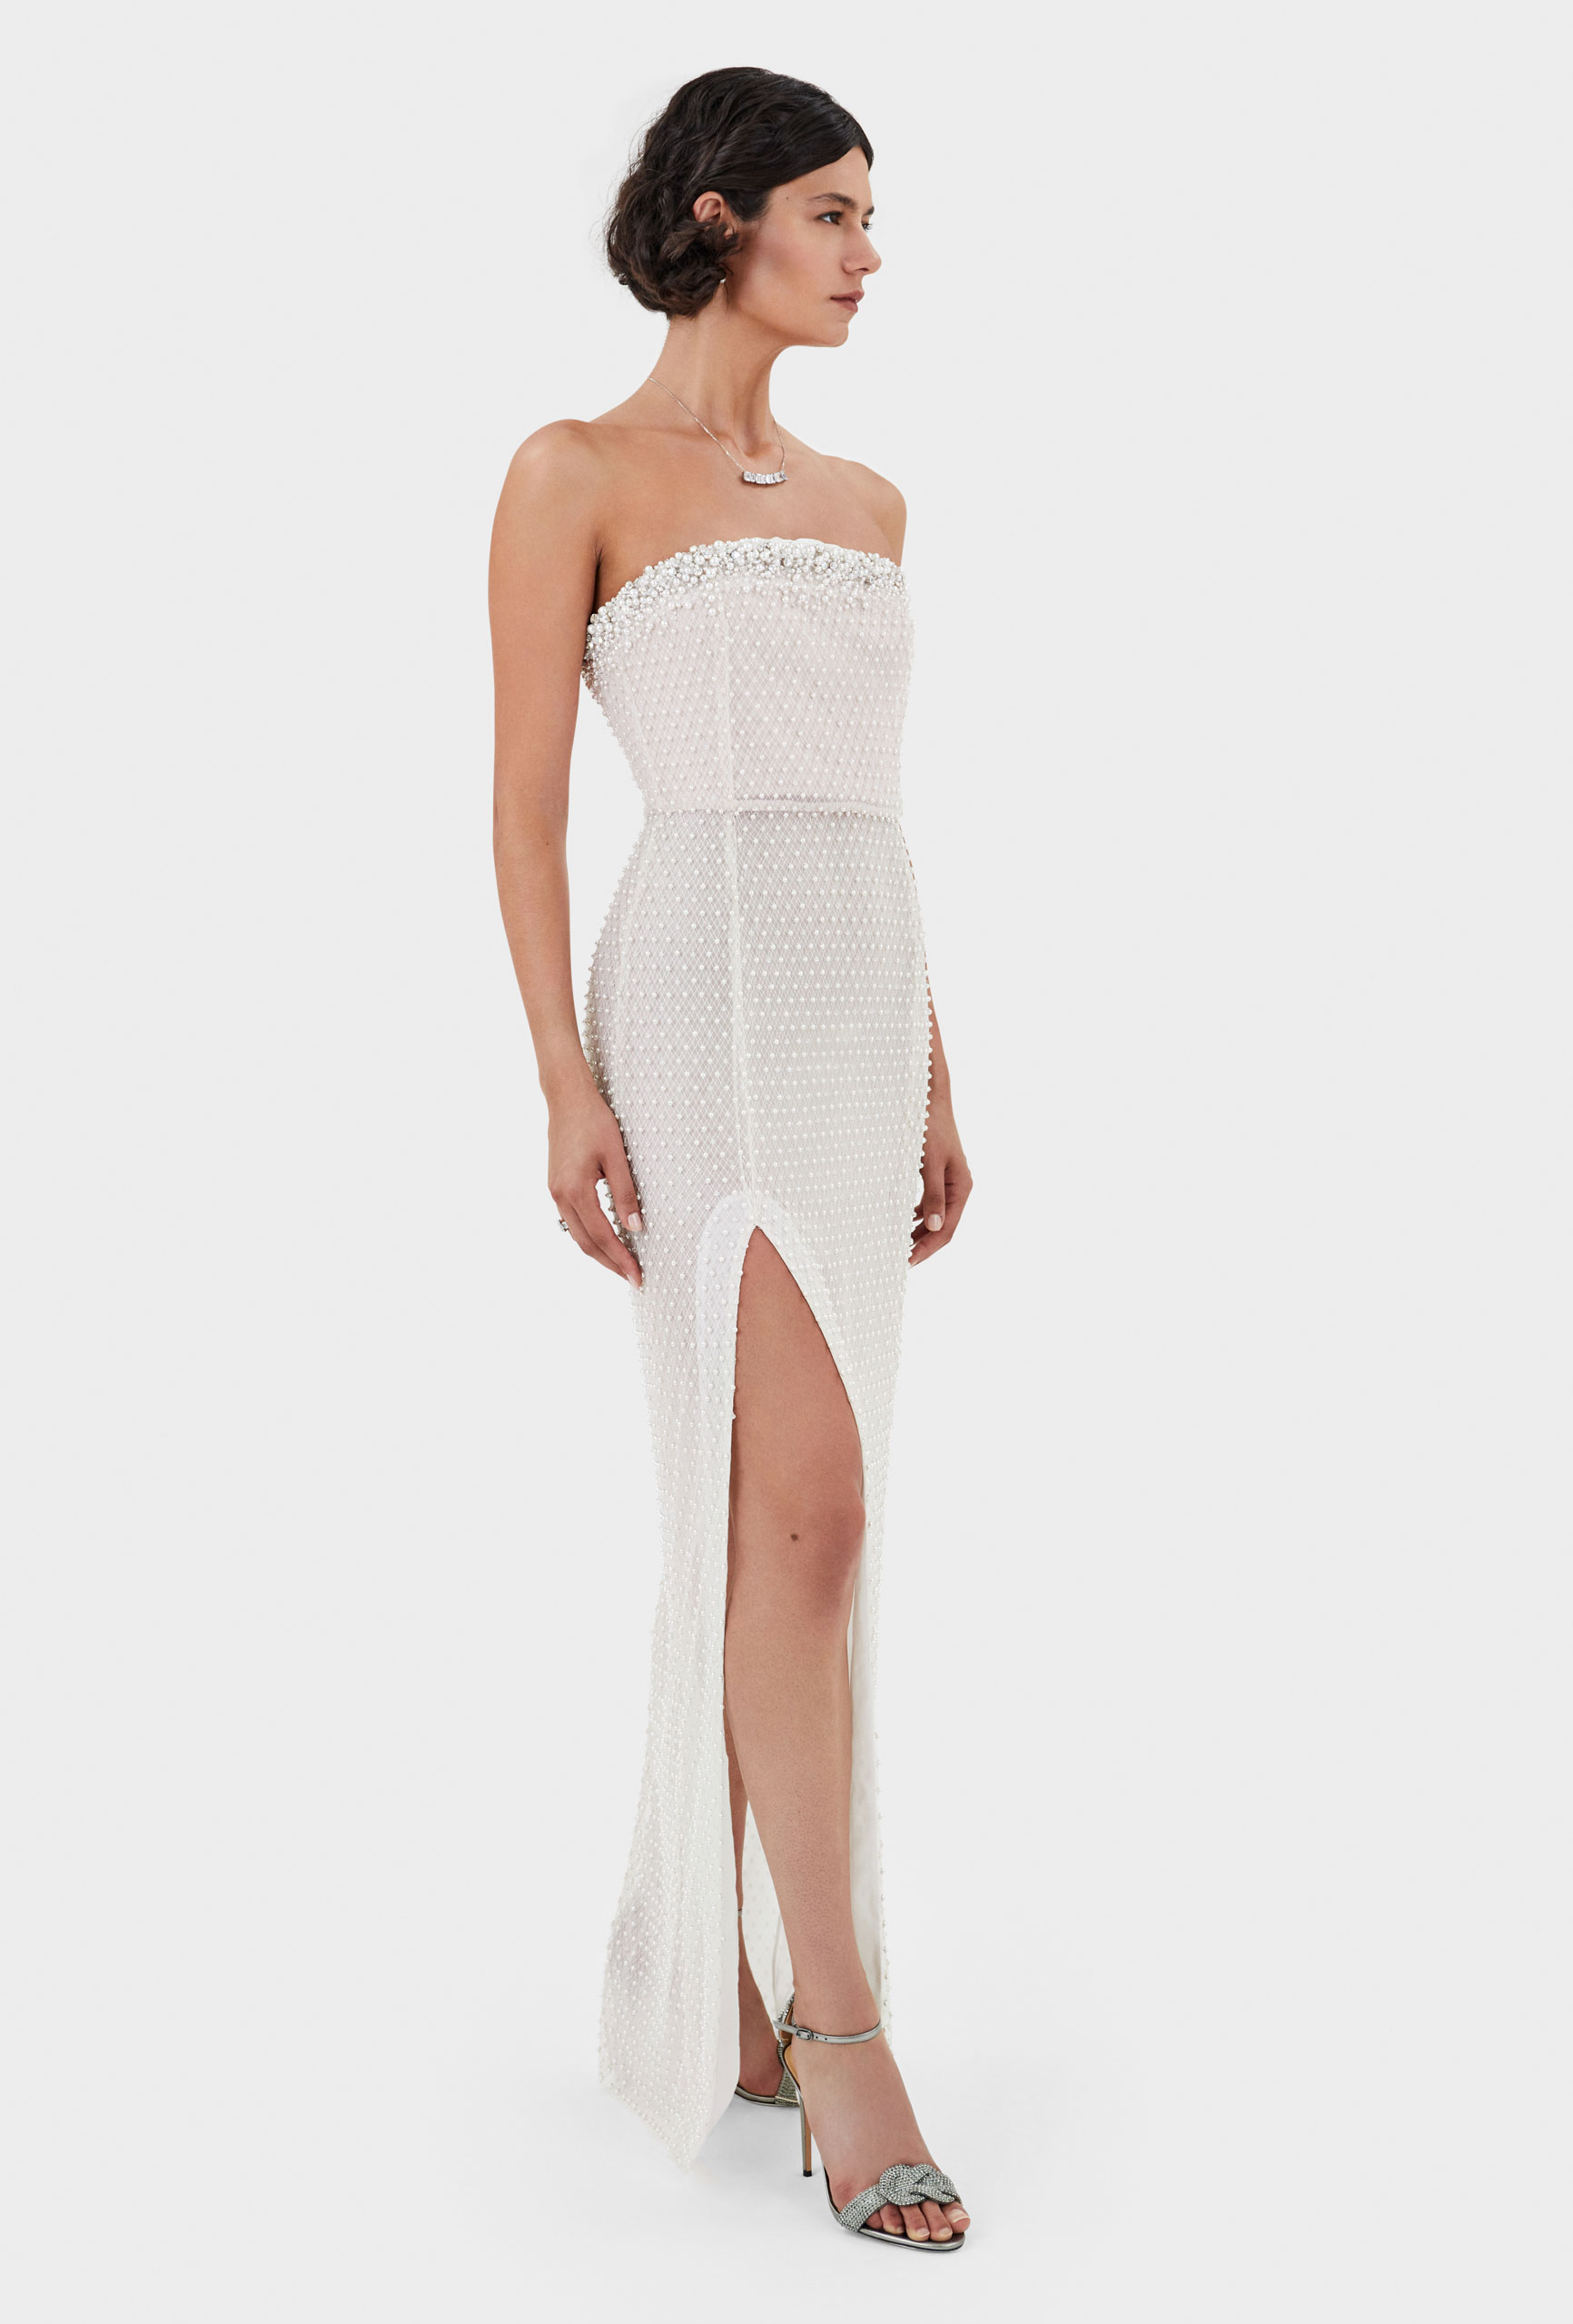 Thom Laurence Dress, embellished bodice, Artful draping, High thigh slit, hand embellishment, Made in London